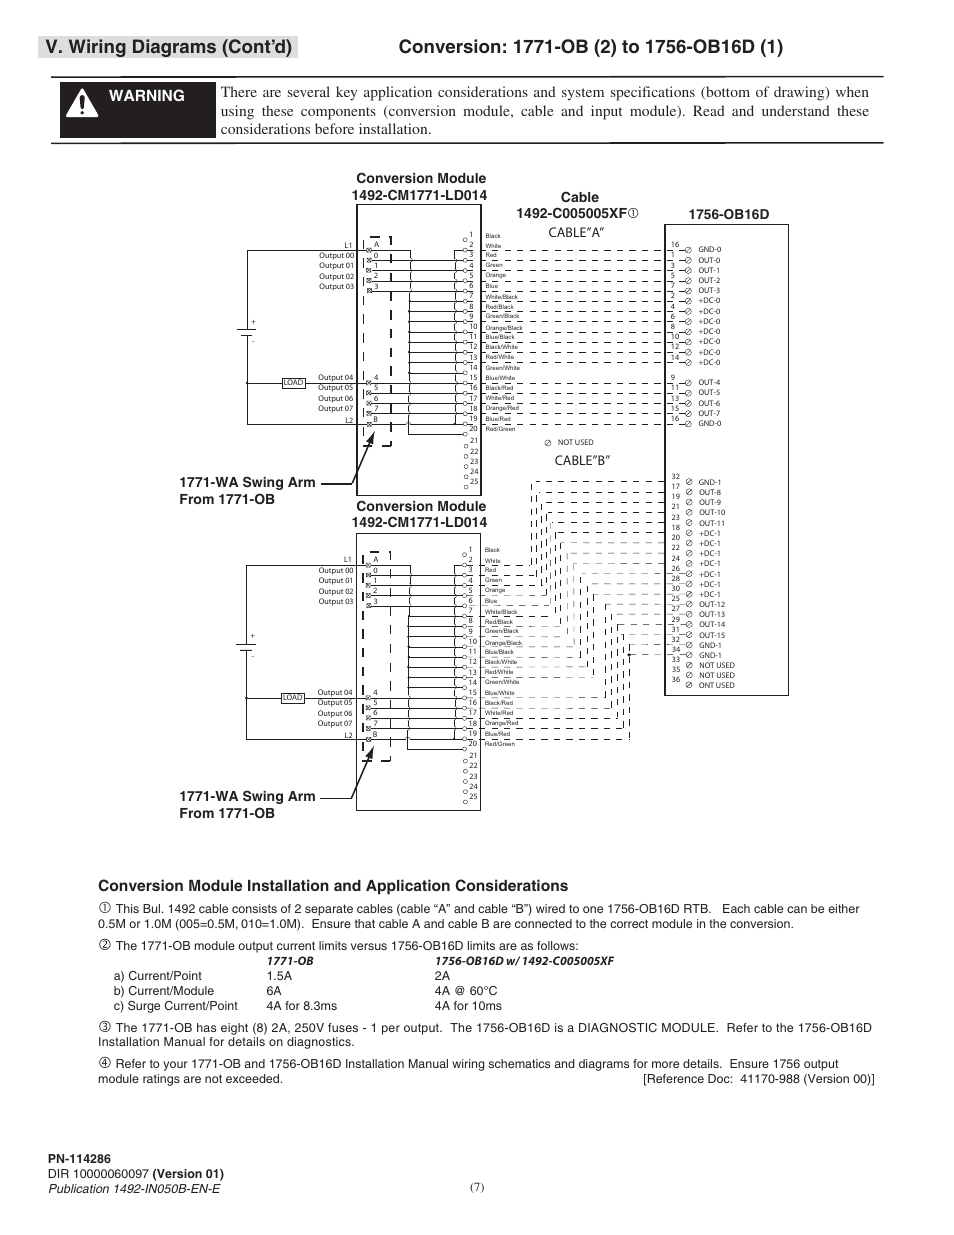 1756 Ob16 Wiring Diagram 24 Images Powerflex 70 Rockwell Automation 1492 Cm1771 Ld0014f Field Wire Conversion Module Page7 V Diagrams Cont